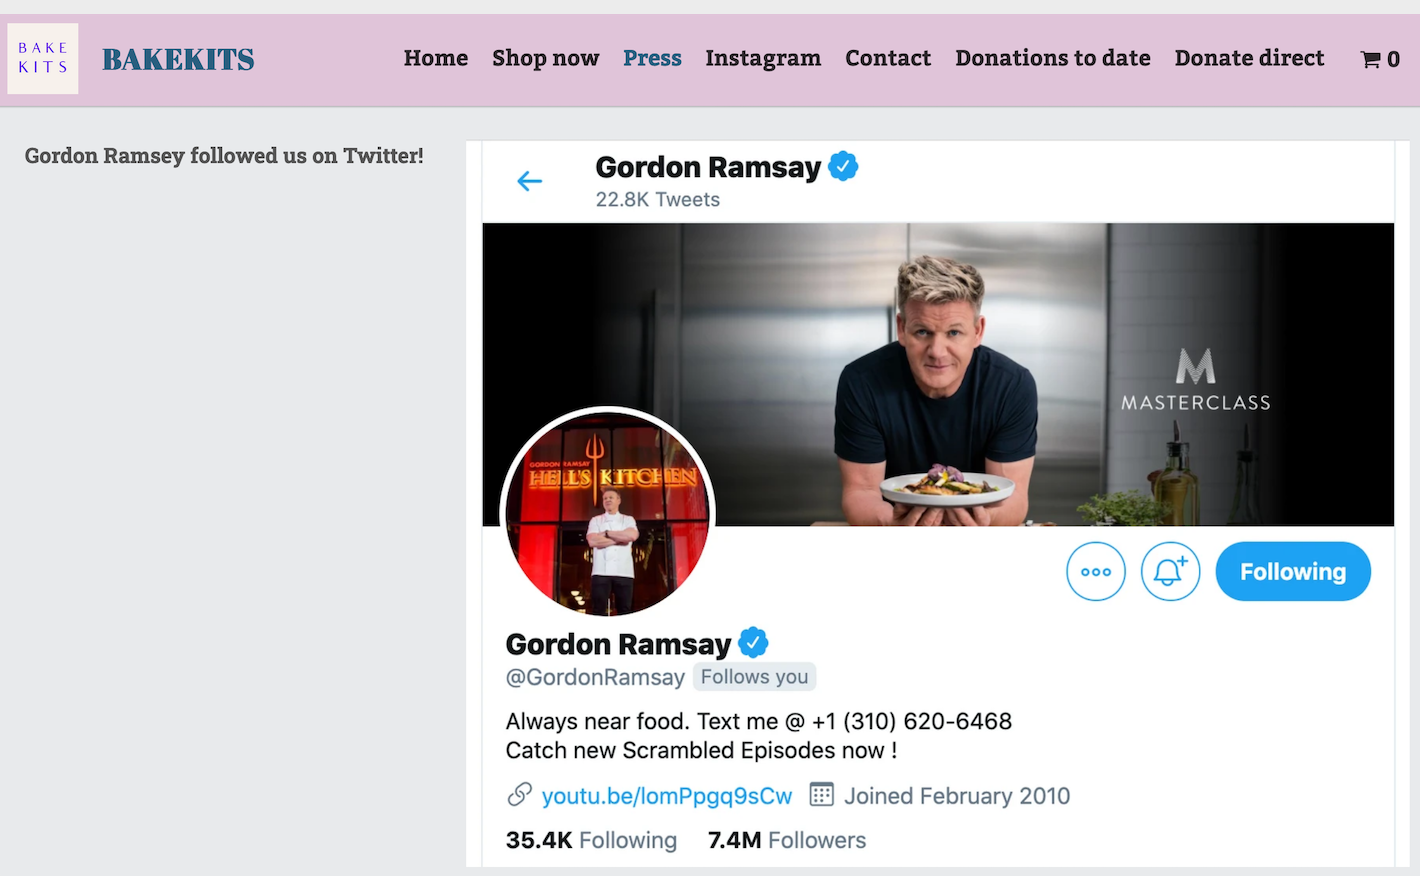 Image from BakeKits' website, promoting Gordon Ramsey following them on Twitter.